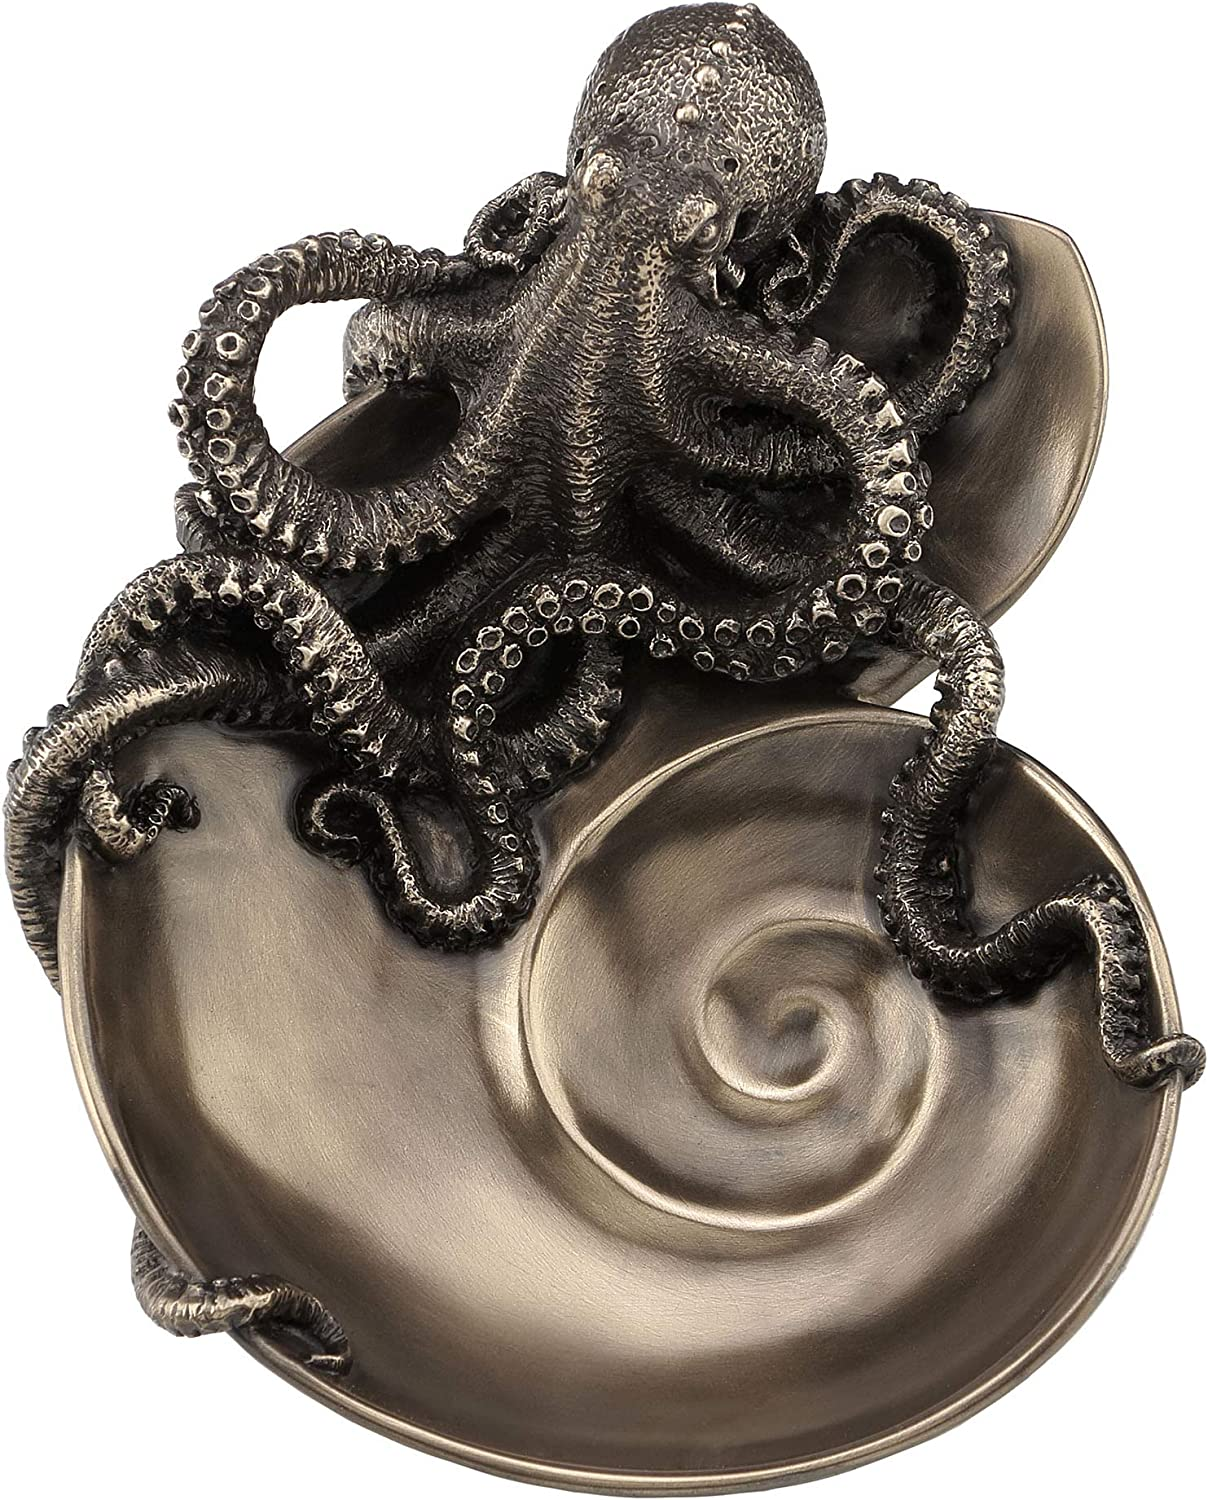 Veronese Design Container of Curiosity Bronze Finish Octopus On Nautilus Shell Tray